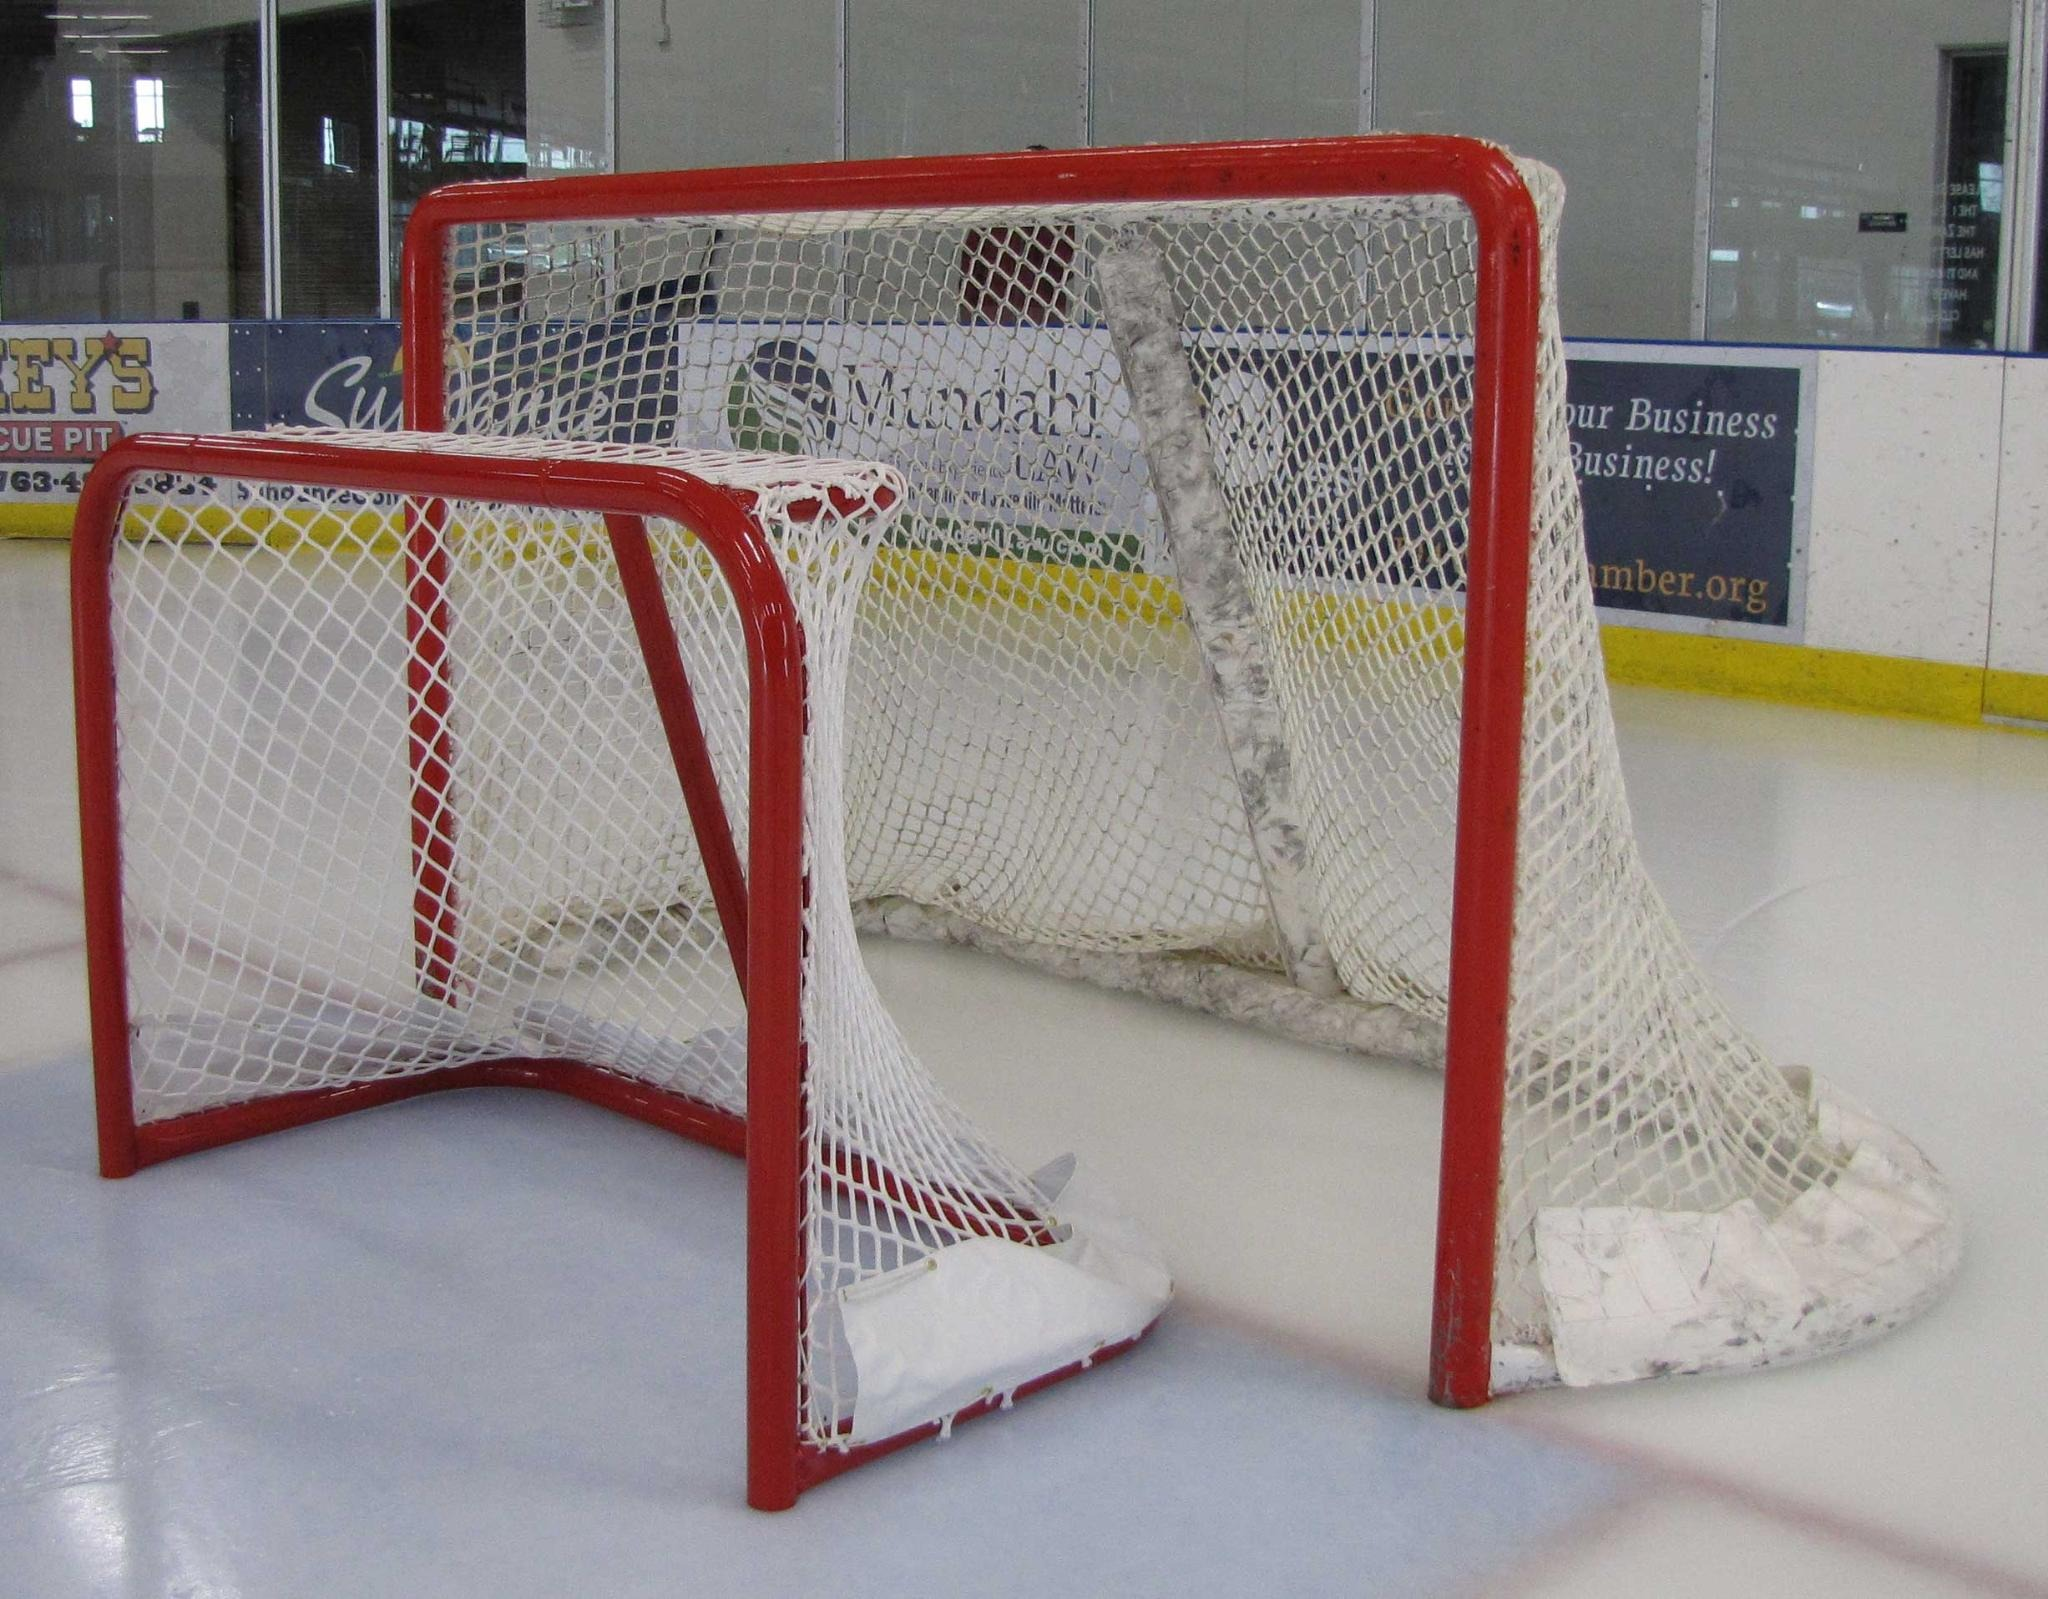 "4'6"" x 3' Cross-Ice Steel Hockey Goal Frame; 24"" Rectangular Base Depth; Welded Lacing Bar for Attaching Net; Red Powder-Coated Finish; Age 8U Players."